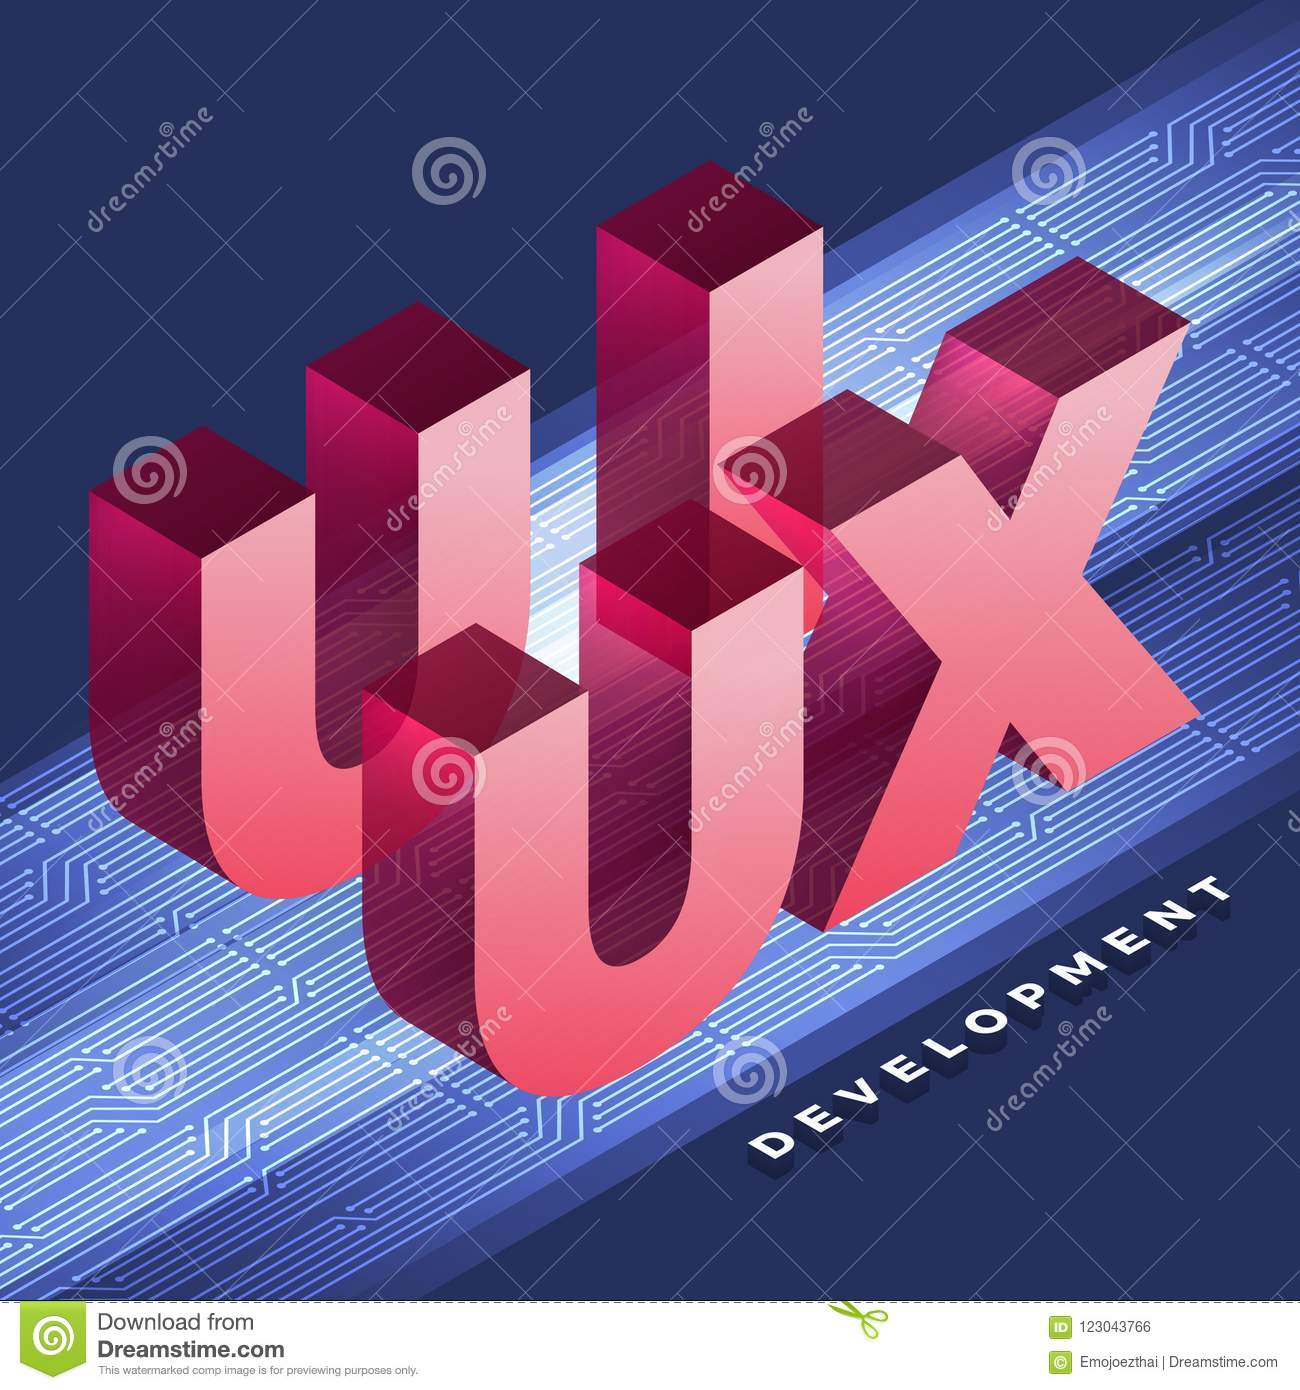 Ui Ux Developer >> Teamwork Ui Ux Developer Stock Vector Illustration Of Vector